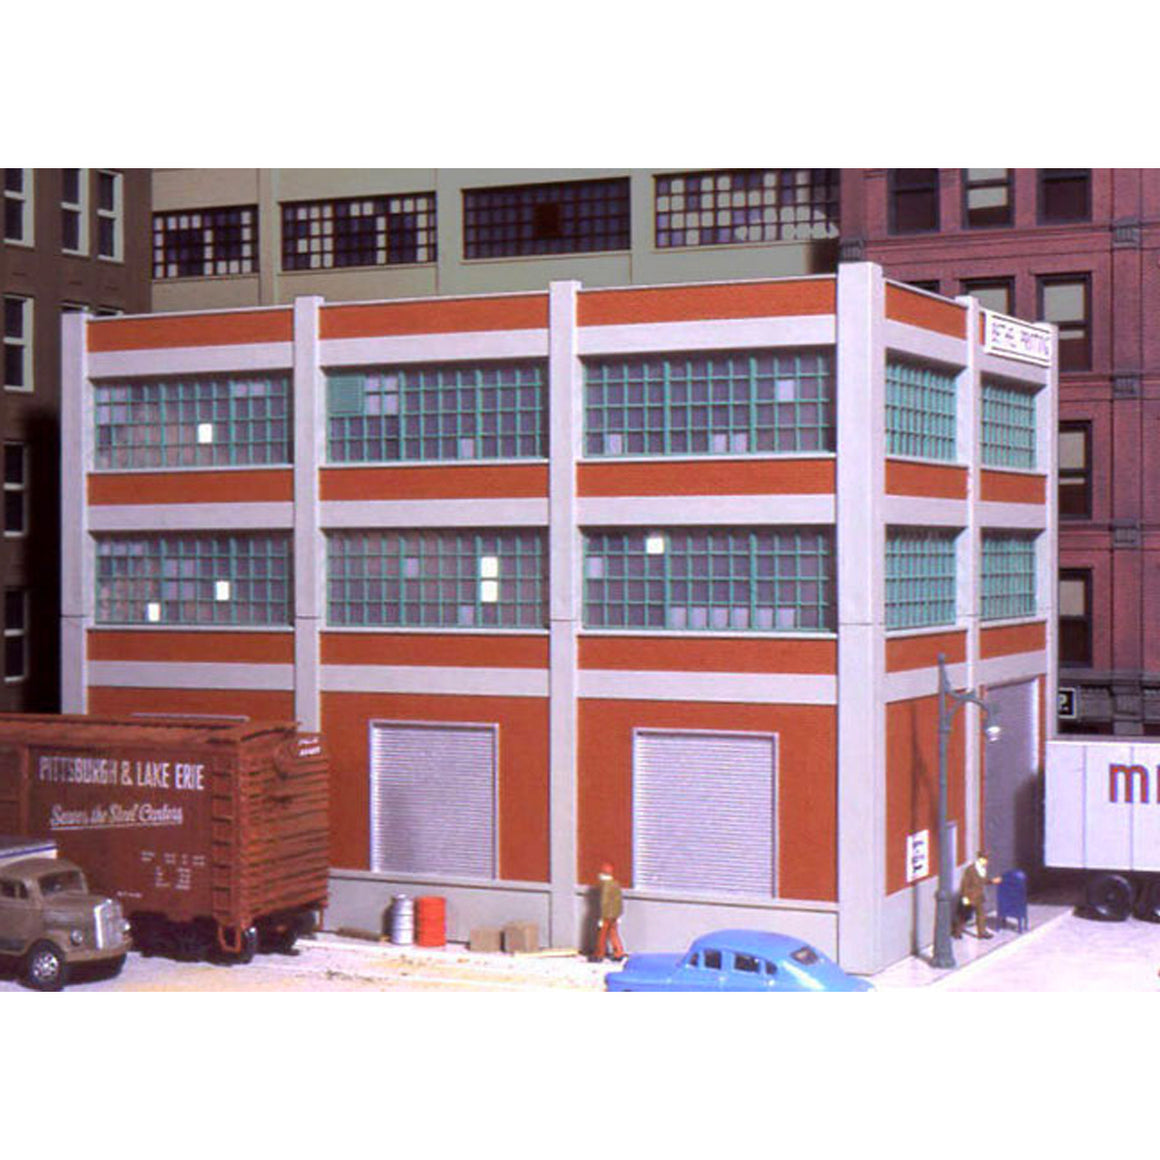 HO Scale: Smallman Street Warehouse - Kit